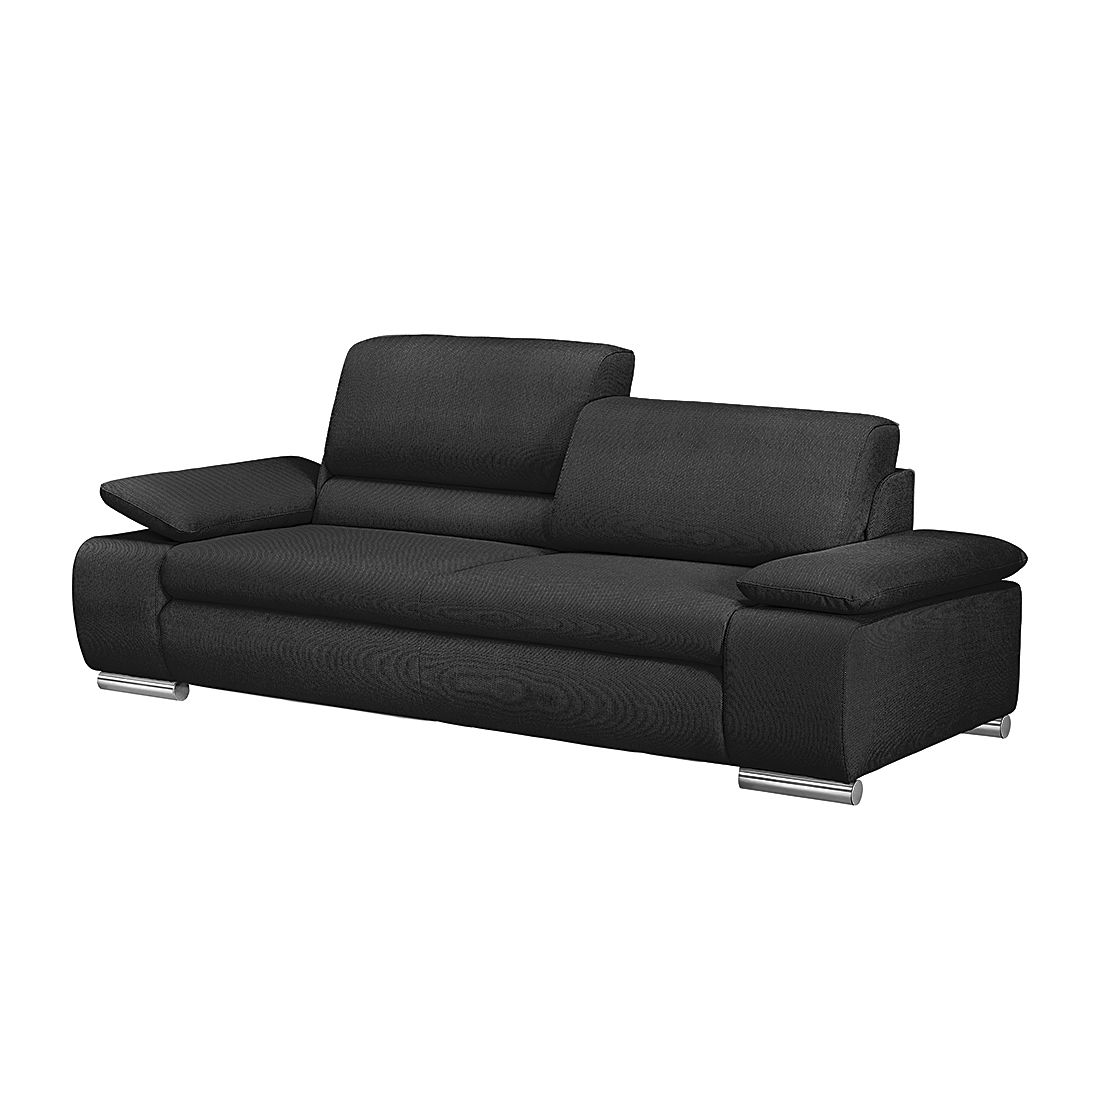 sofa masca 3 sitzer strukturstoff anthrazit loftscape kaufen. Black Bedroom Furniture Sets. Home Design Ideas